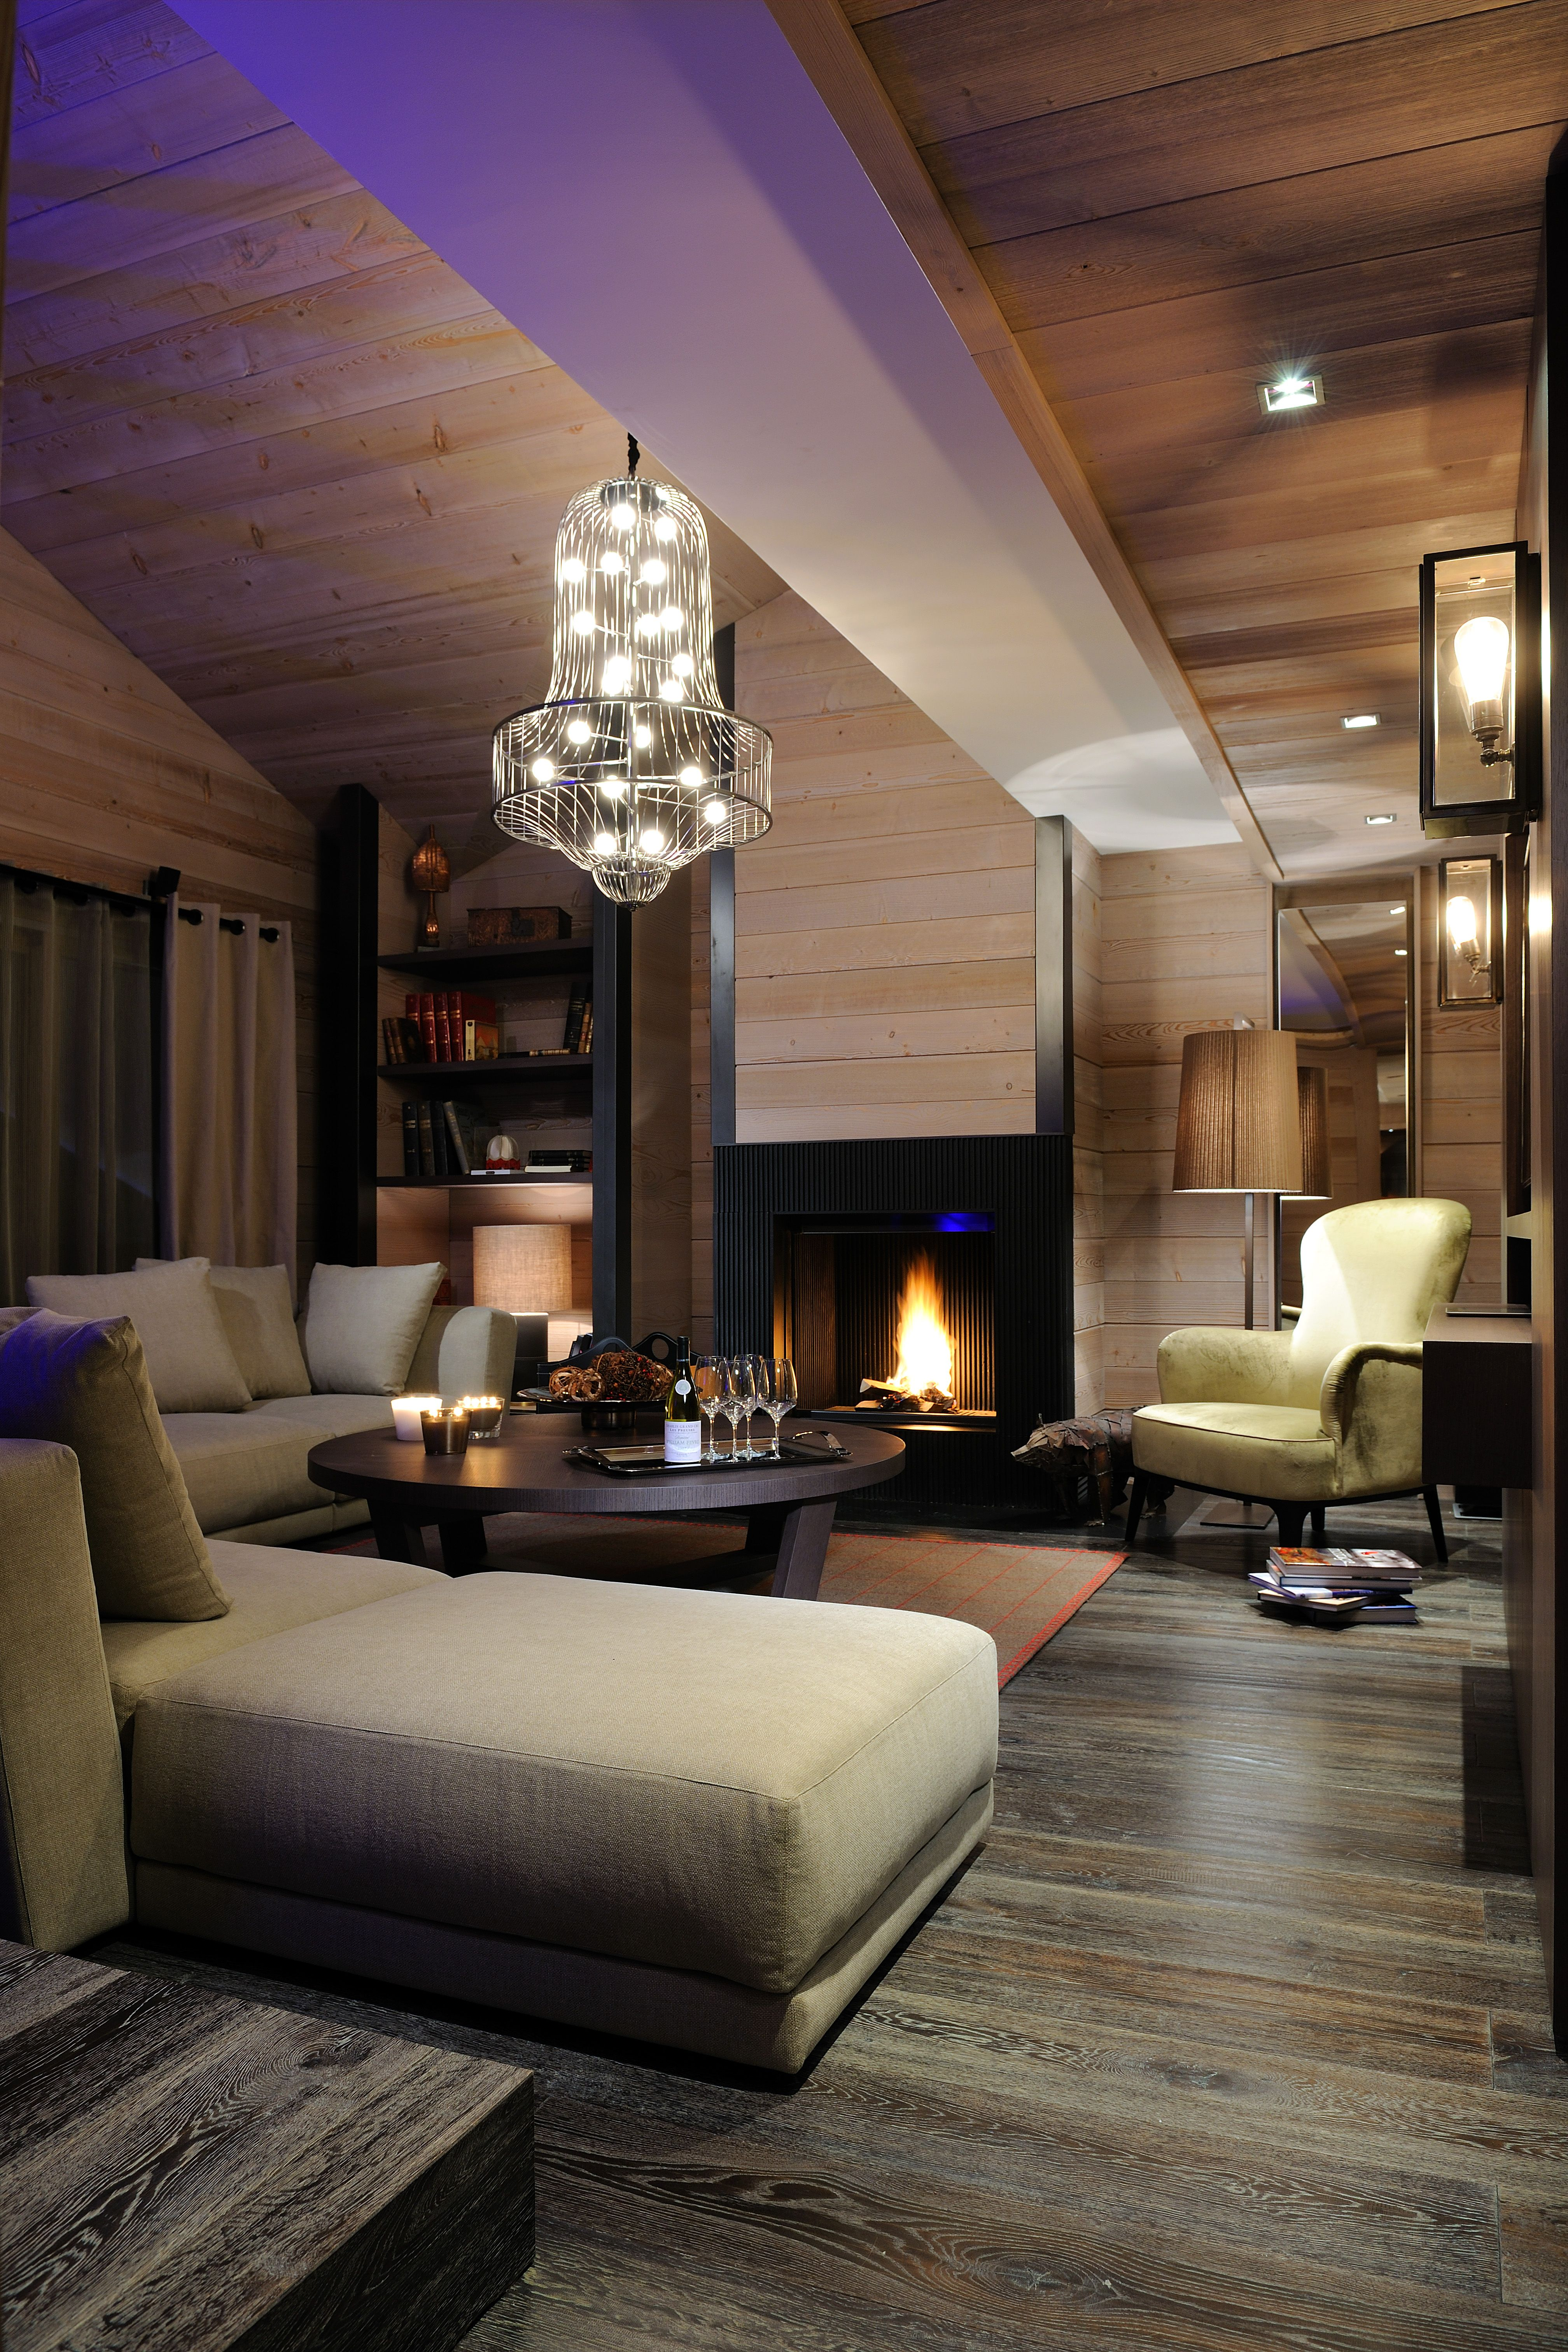 The Ruby Apt. living room at Grandes Alpes, Private Hotel, Courchevel 1850